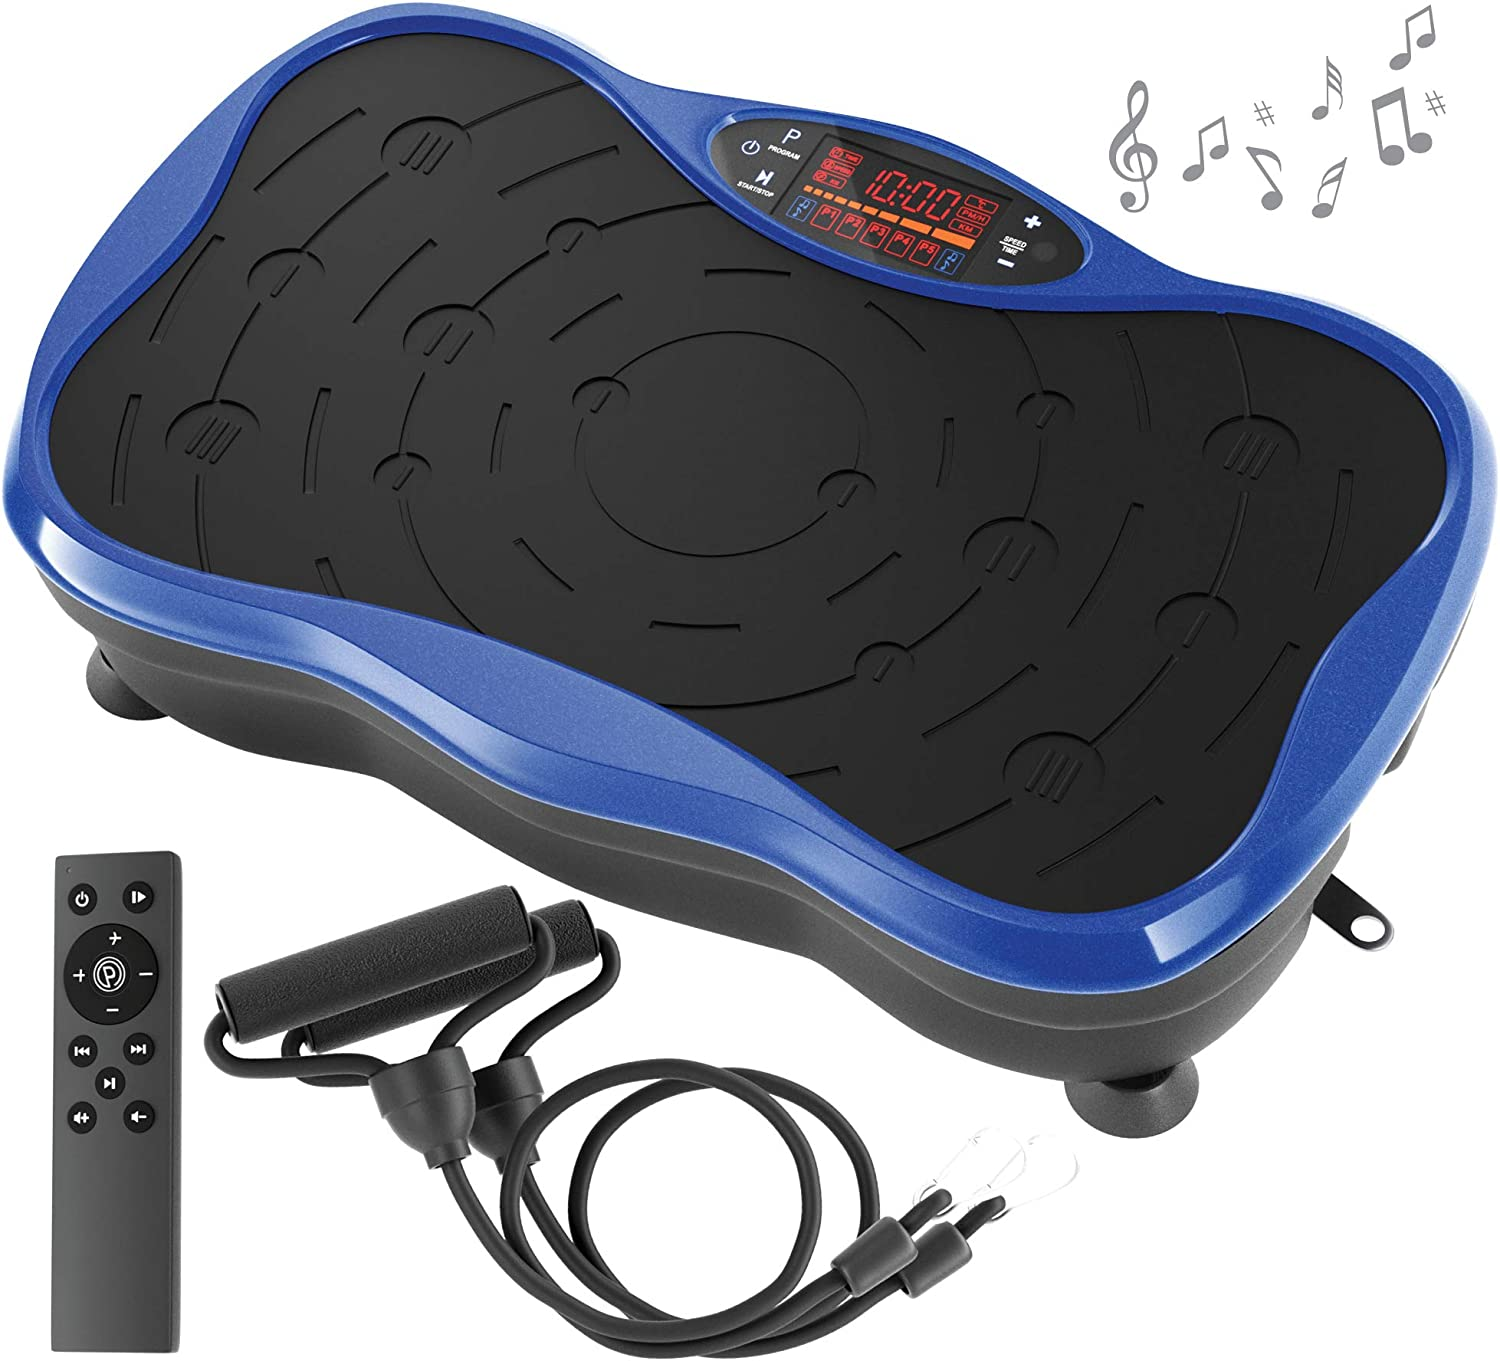 Belmint Vibration Plate Exercise Machine - Mini Fitness Board with 2 Resistance Bands - Home Training Equipment Platform for Full Body Workout - Toning, Lose Fat, Weight Loss, Core, Legs, Back, Squat